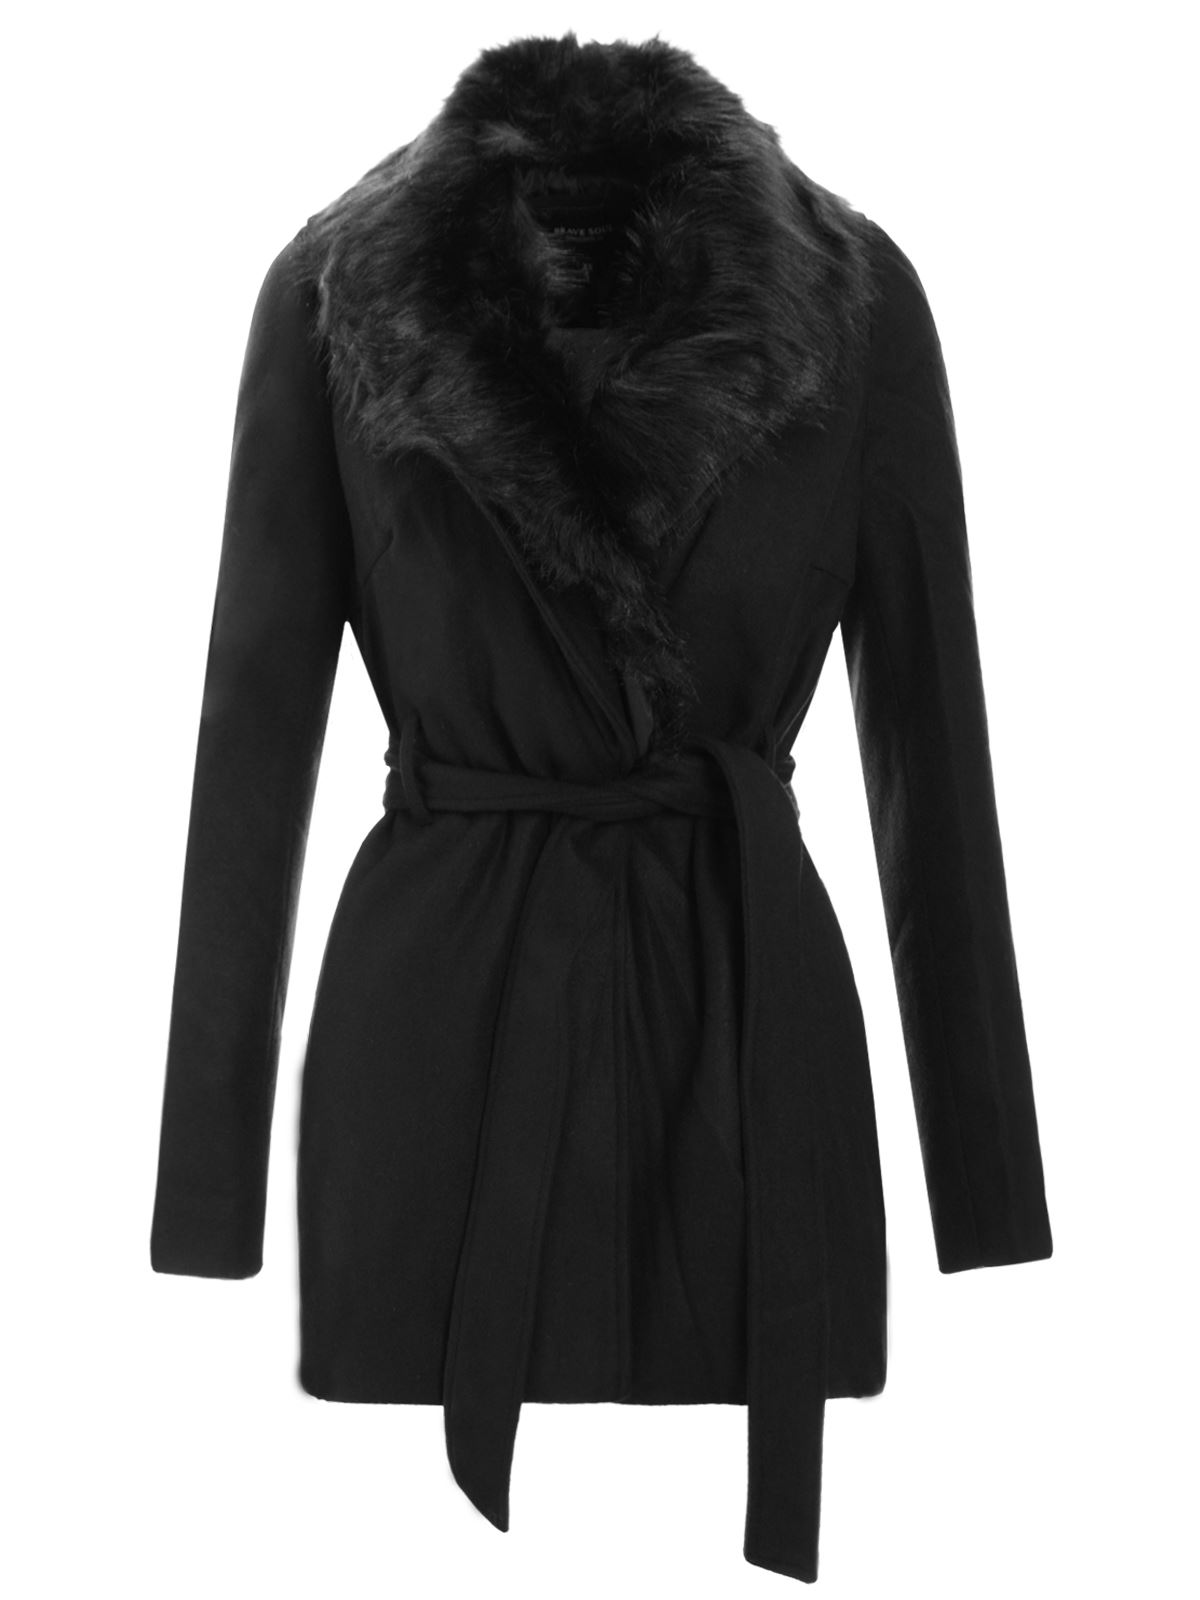 Free shipping Hooded Belted Wool Blend Coat BLACK S under $ in Jackets & Coats online store. Best Coat Dress Online and Belted Sheath Dress Online for sale at oraplanrans.tk